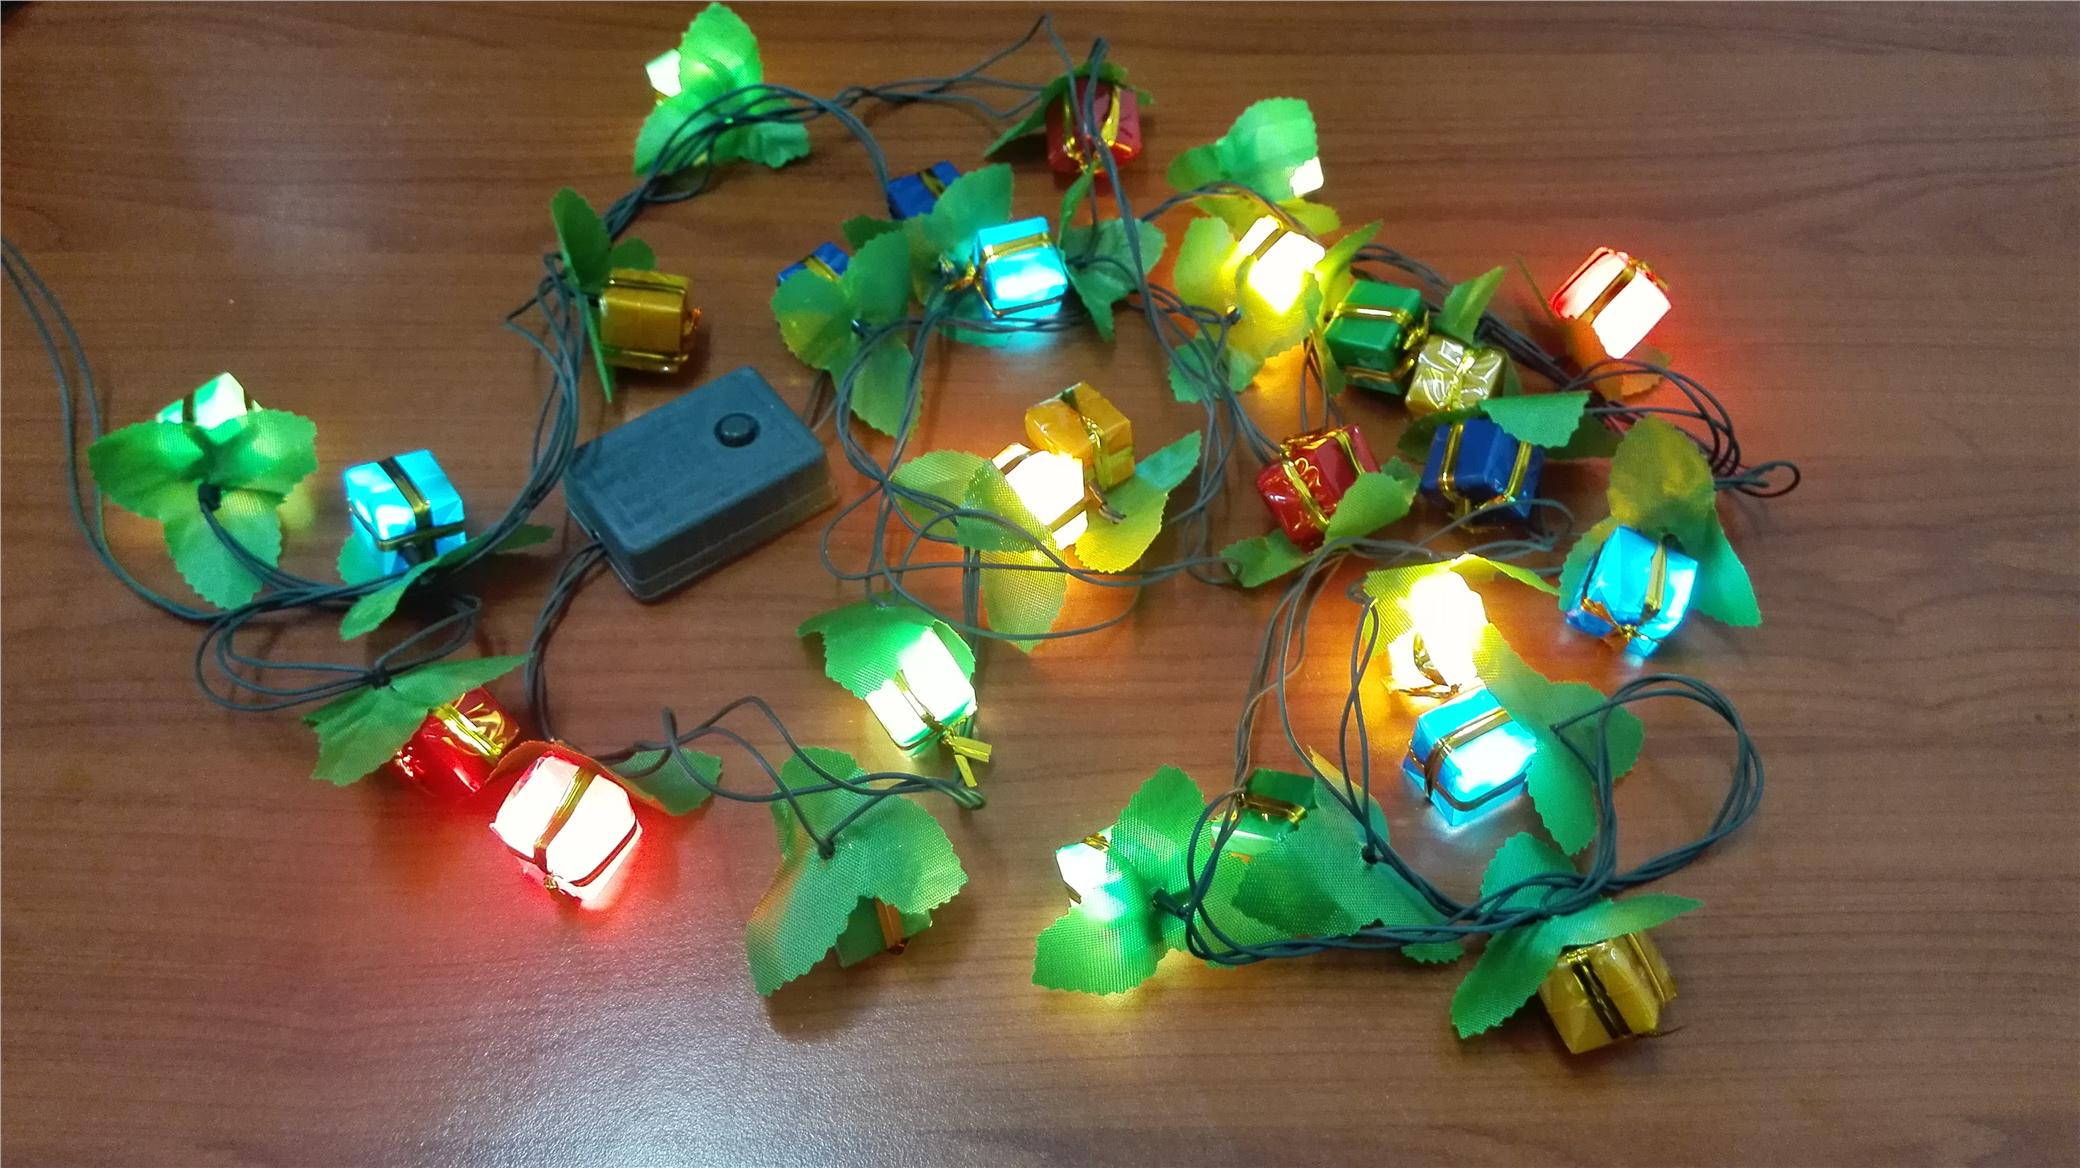 Decorative 60 Present Box RGB LED Light